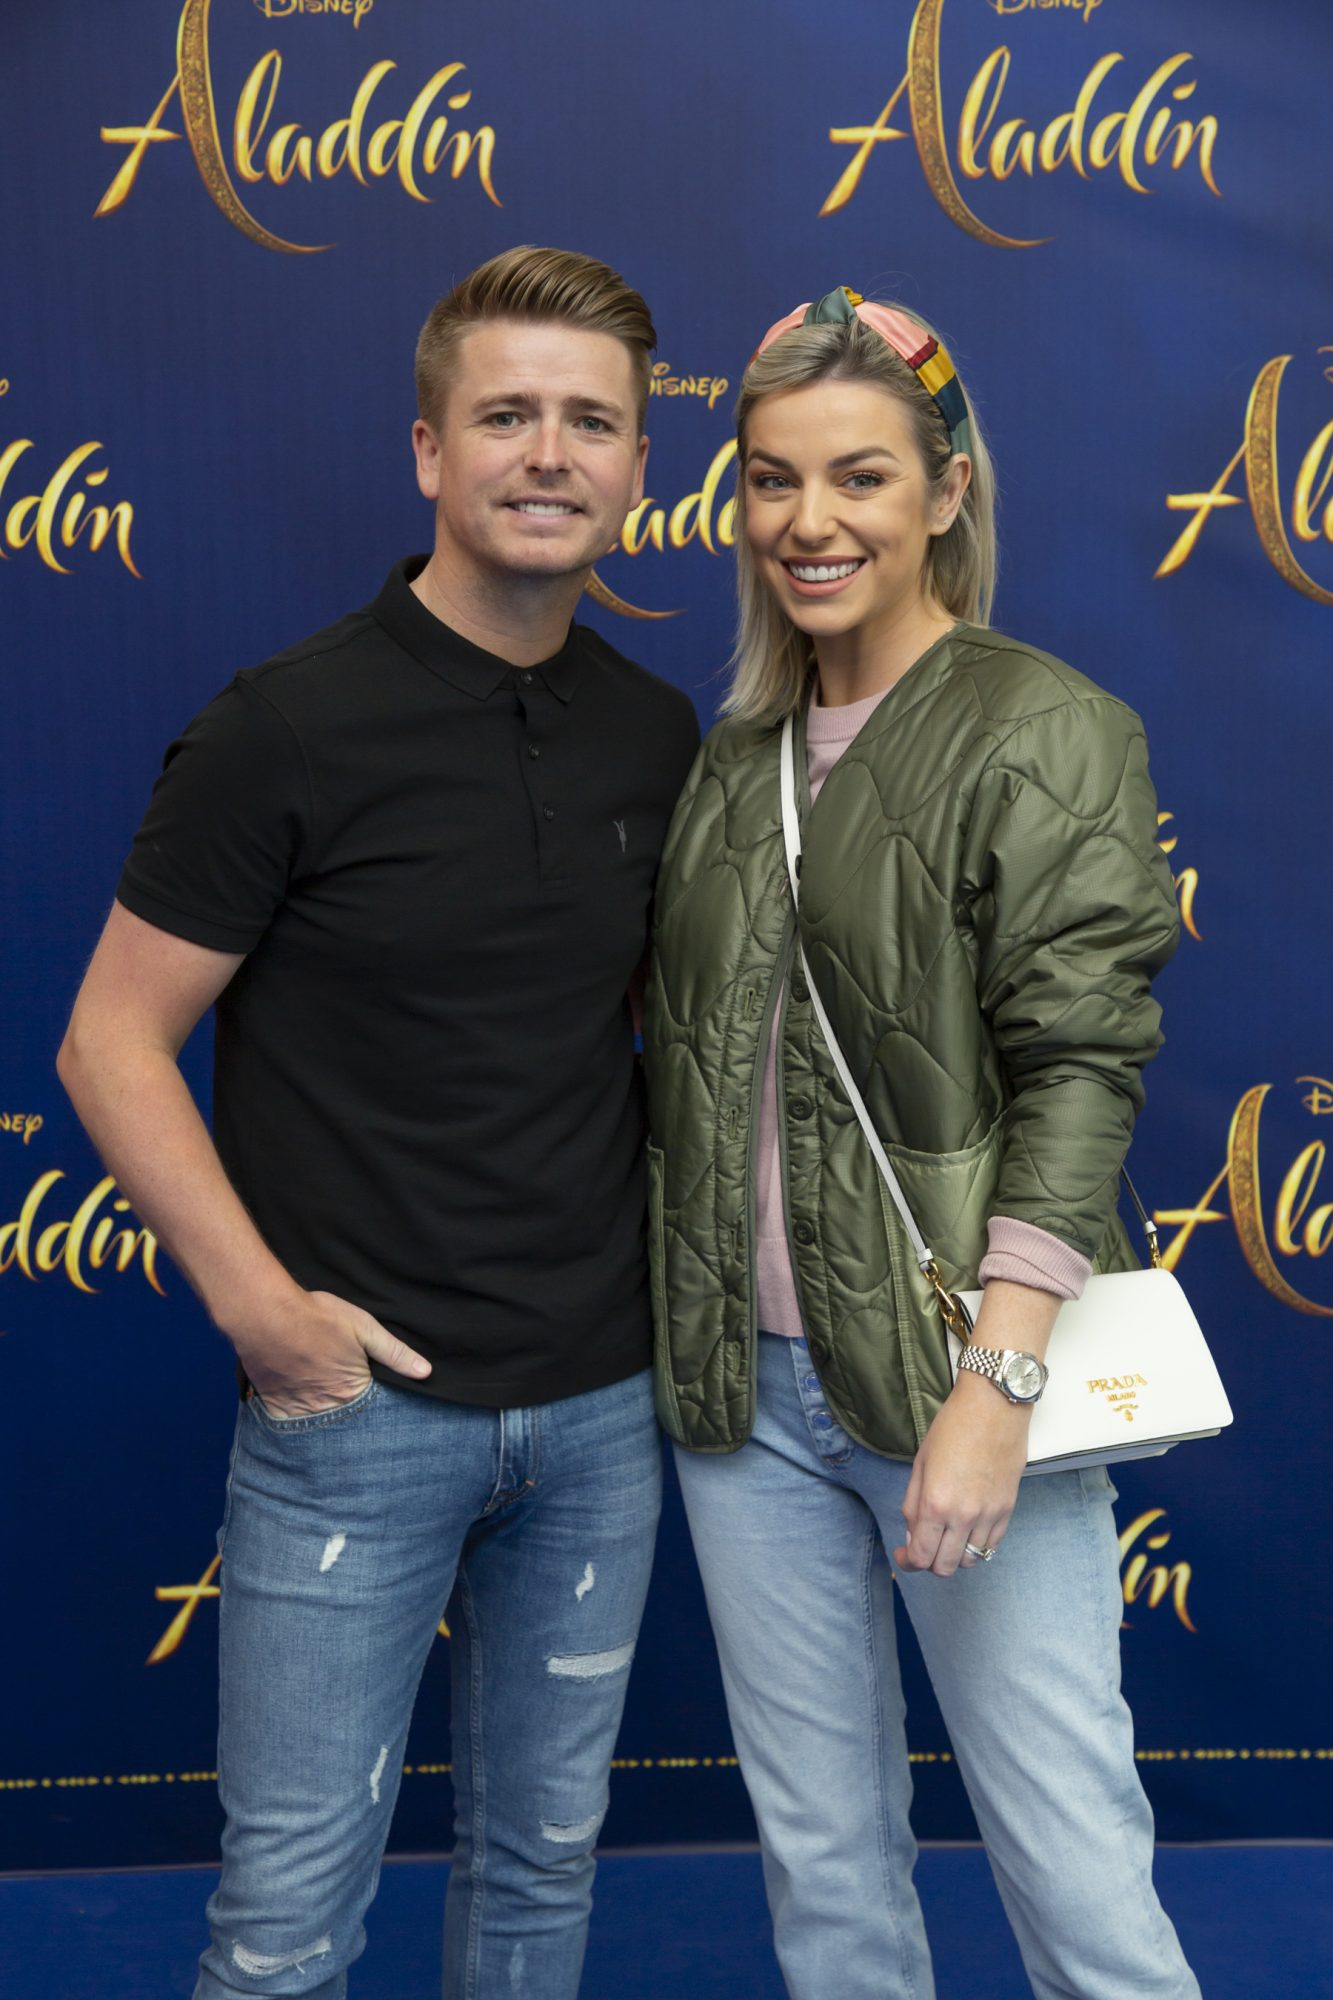 Brian Ormond and Pippa Ormond O'Connor pictured at the special preview screening of Disney's 'Aladdin' at the Odeon Point Village. Photo: Anthony Woods